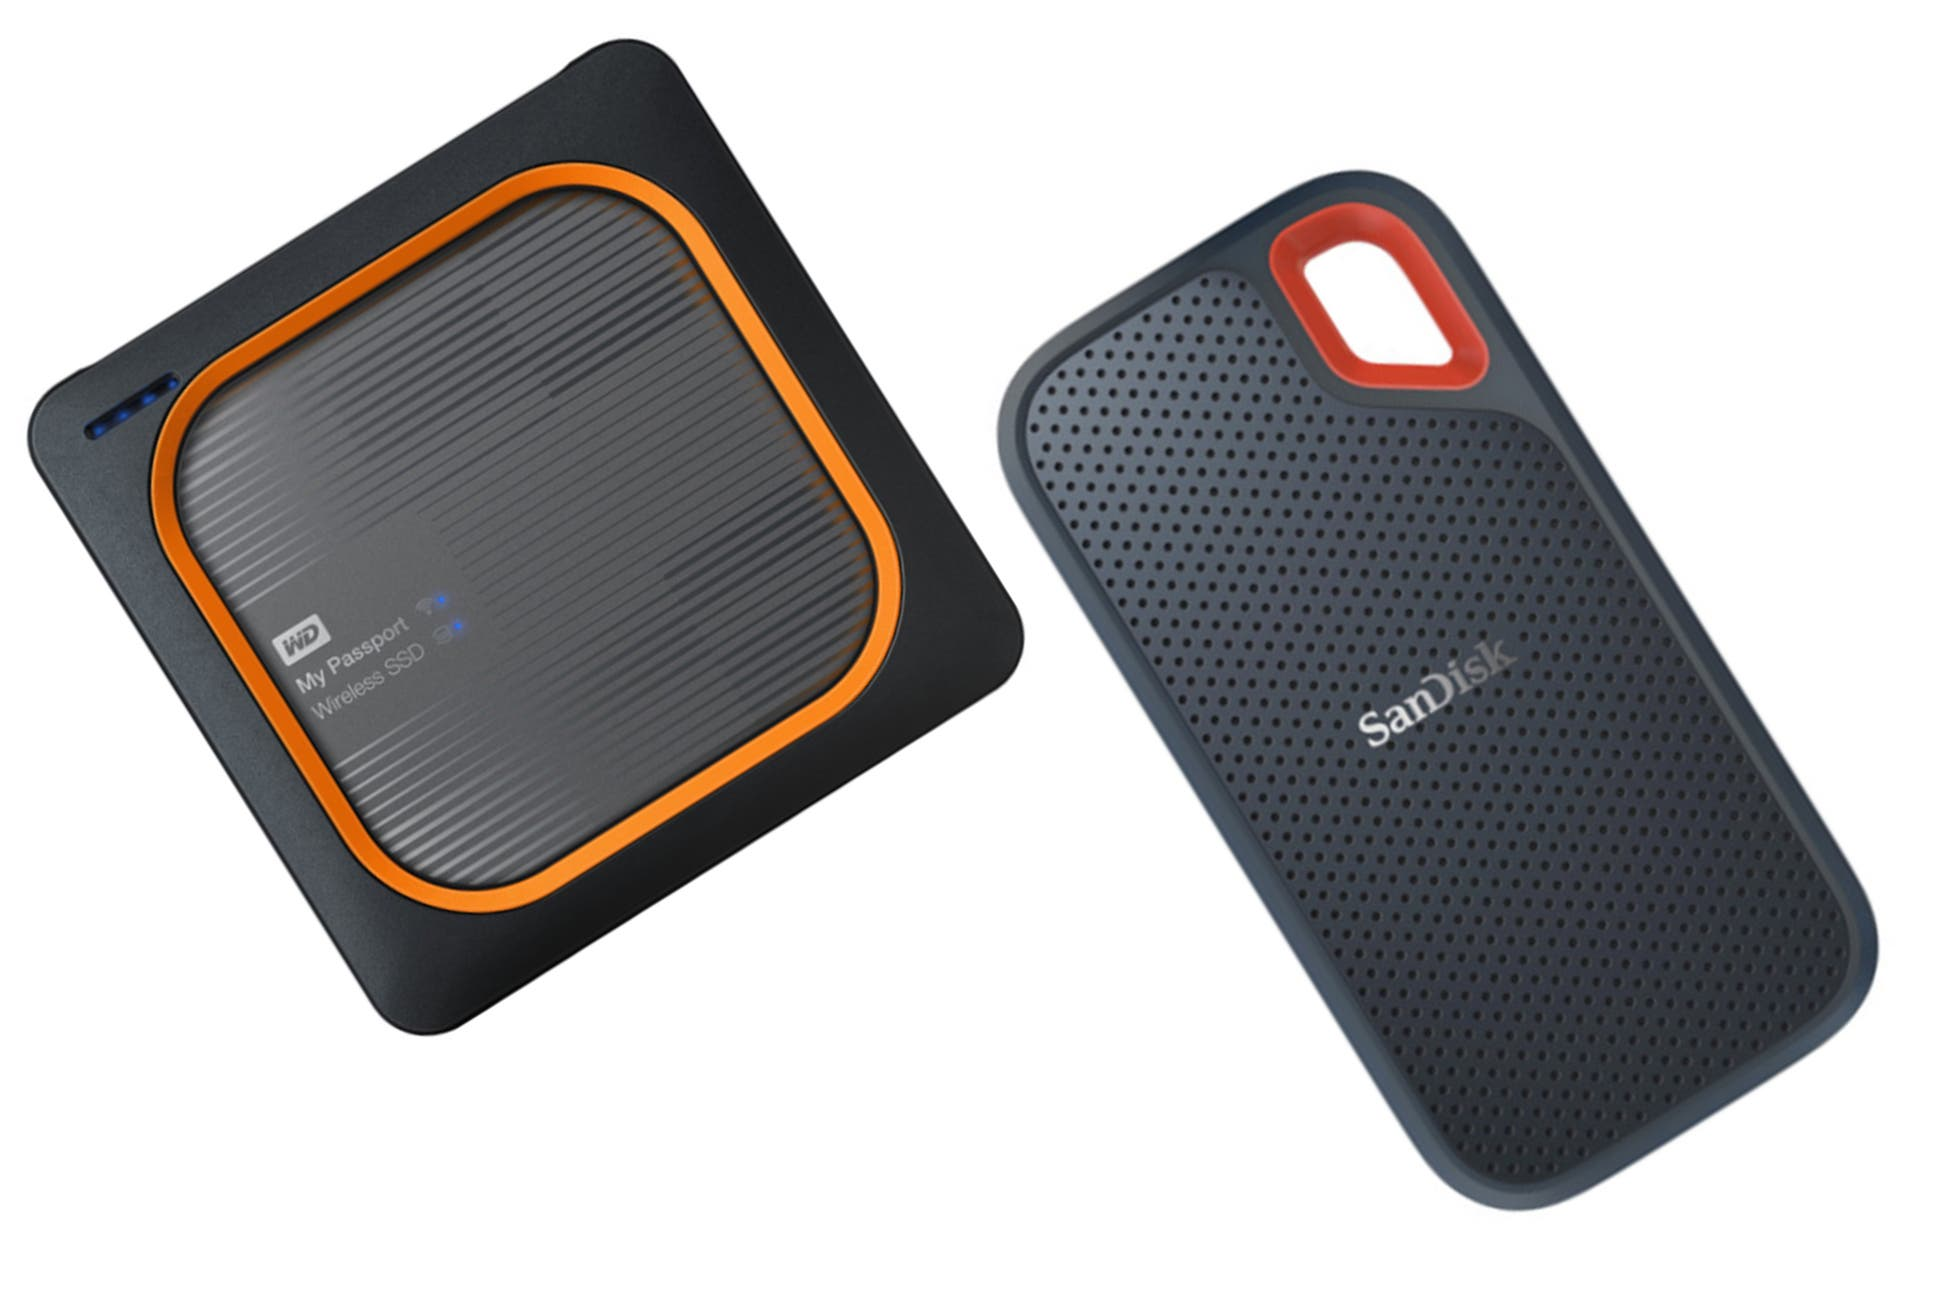 WD and SanDisk Unveil Powerful New Portable SSDs That Traveling Photographers Should See